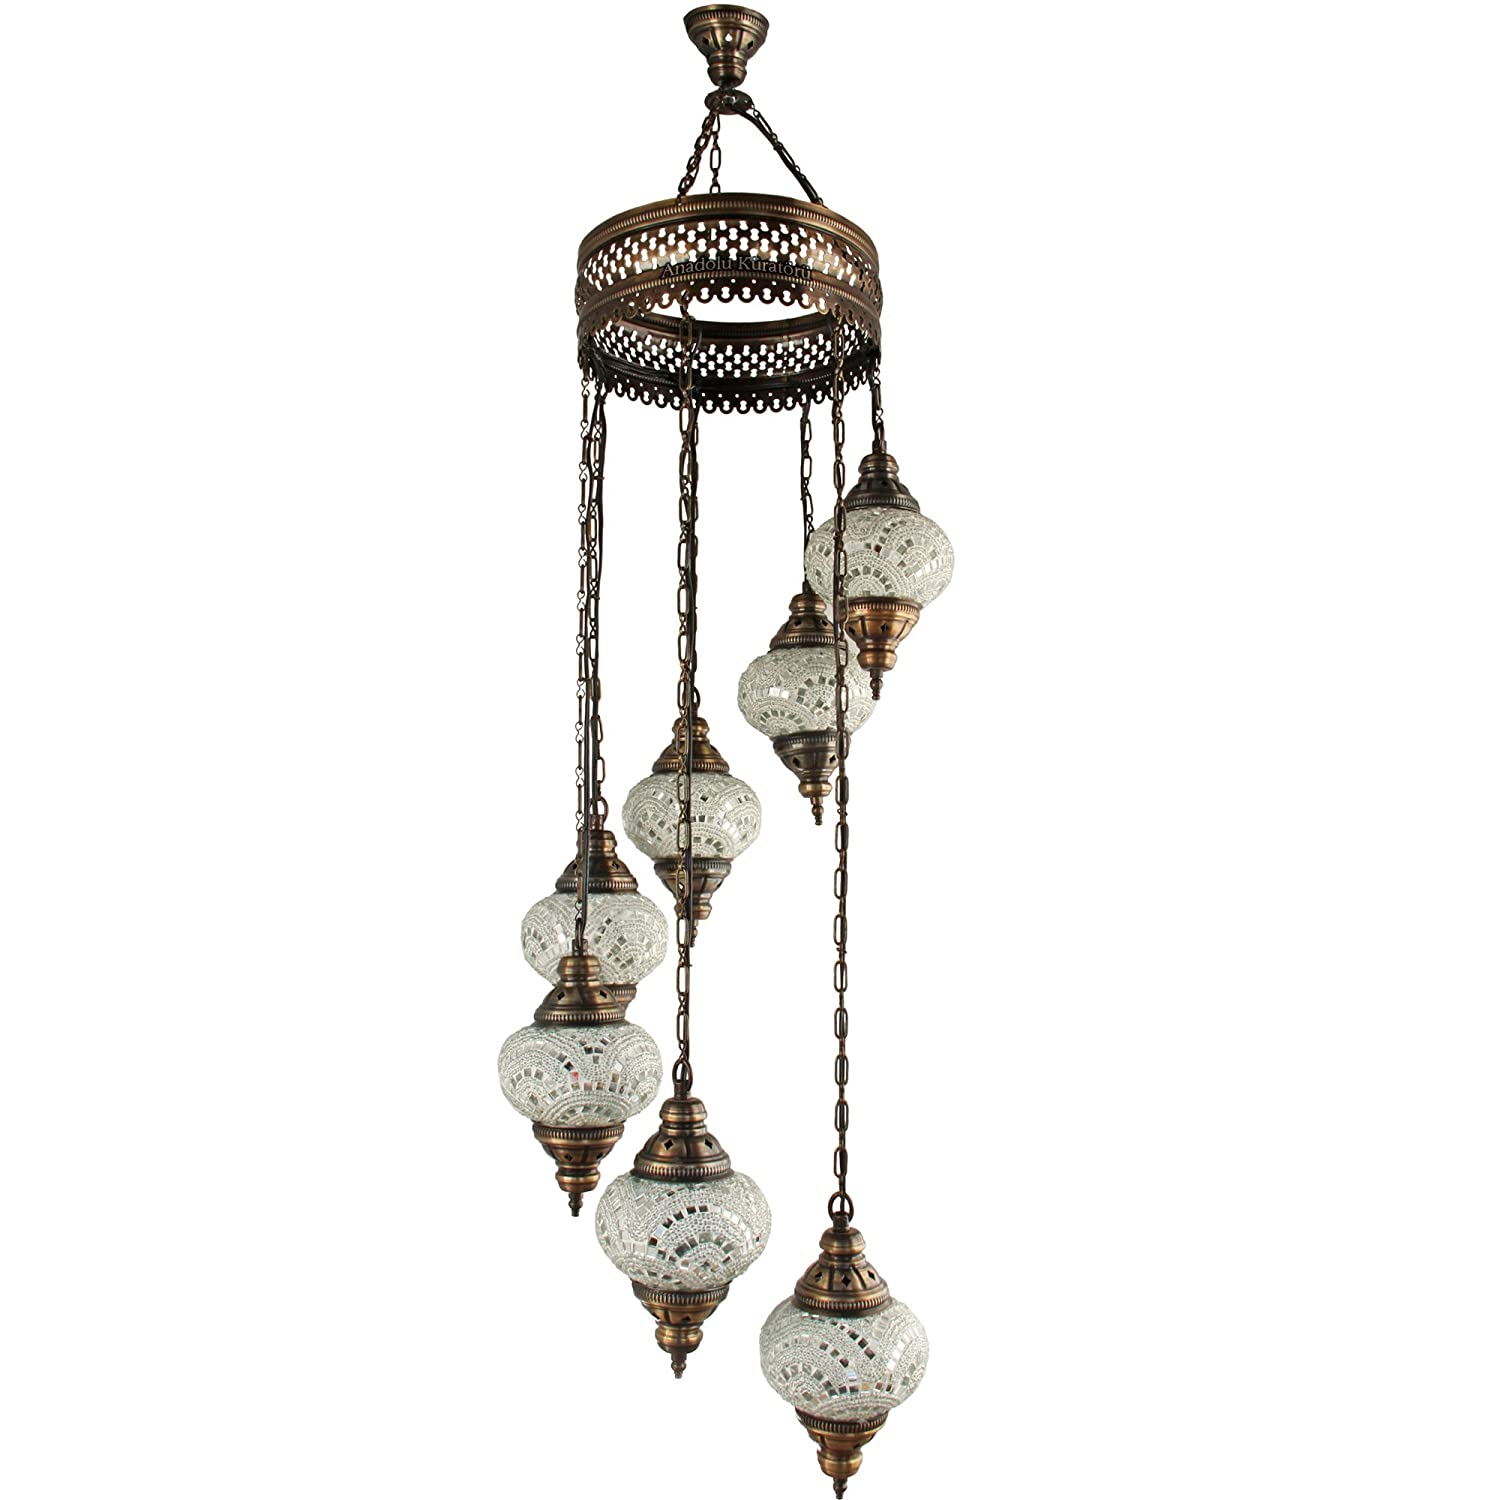 Chandelier Ceiling Lights Turkish Lamps Hanging Mosaic Lights